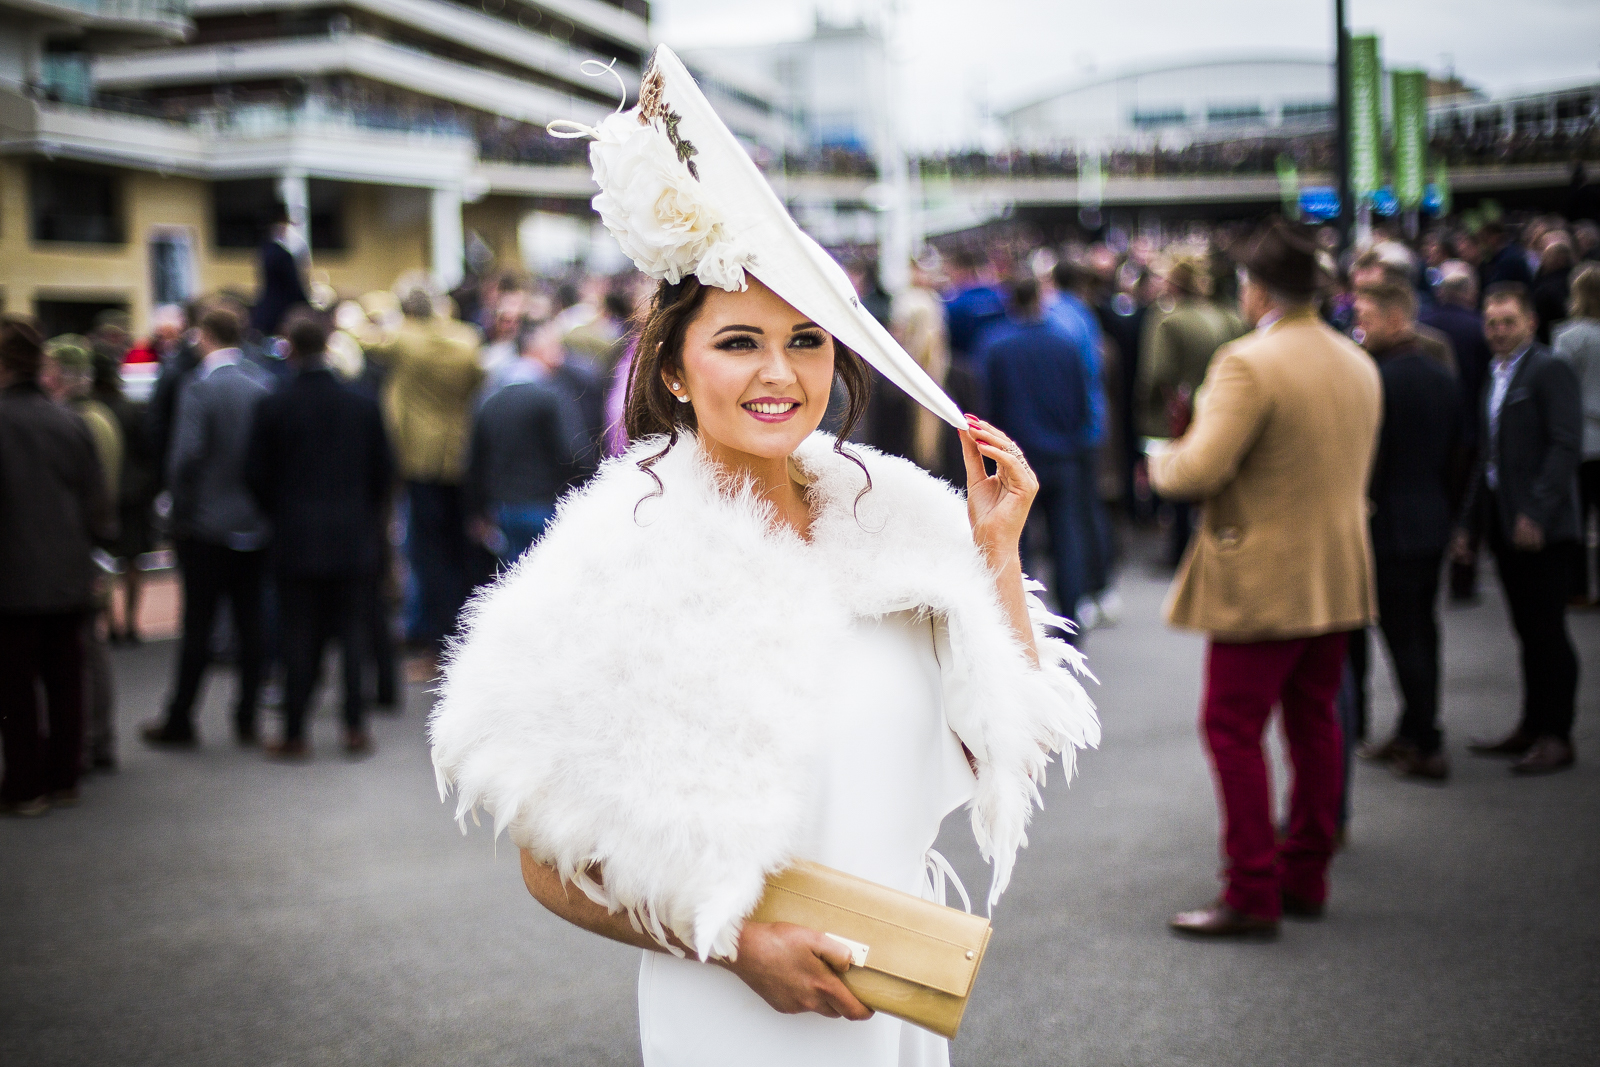 Jennifer Wrynne, 27, at Cheltenham Festival in Cheltenham, Gloucestershire